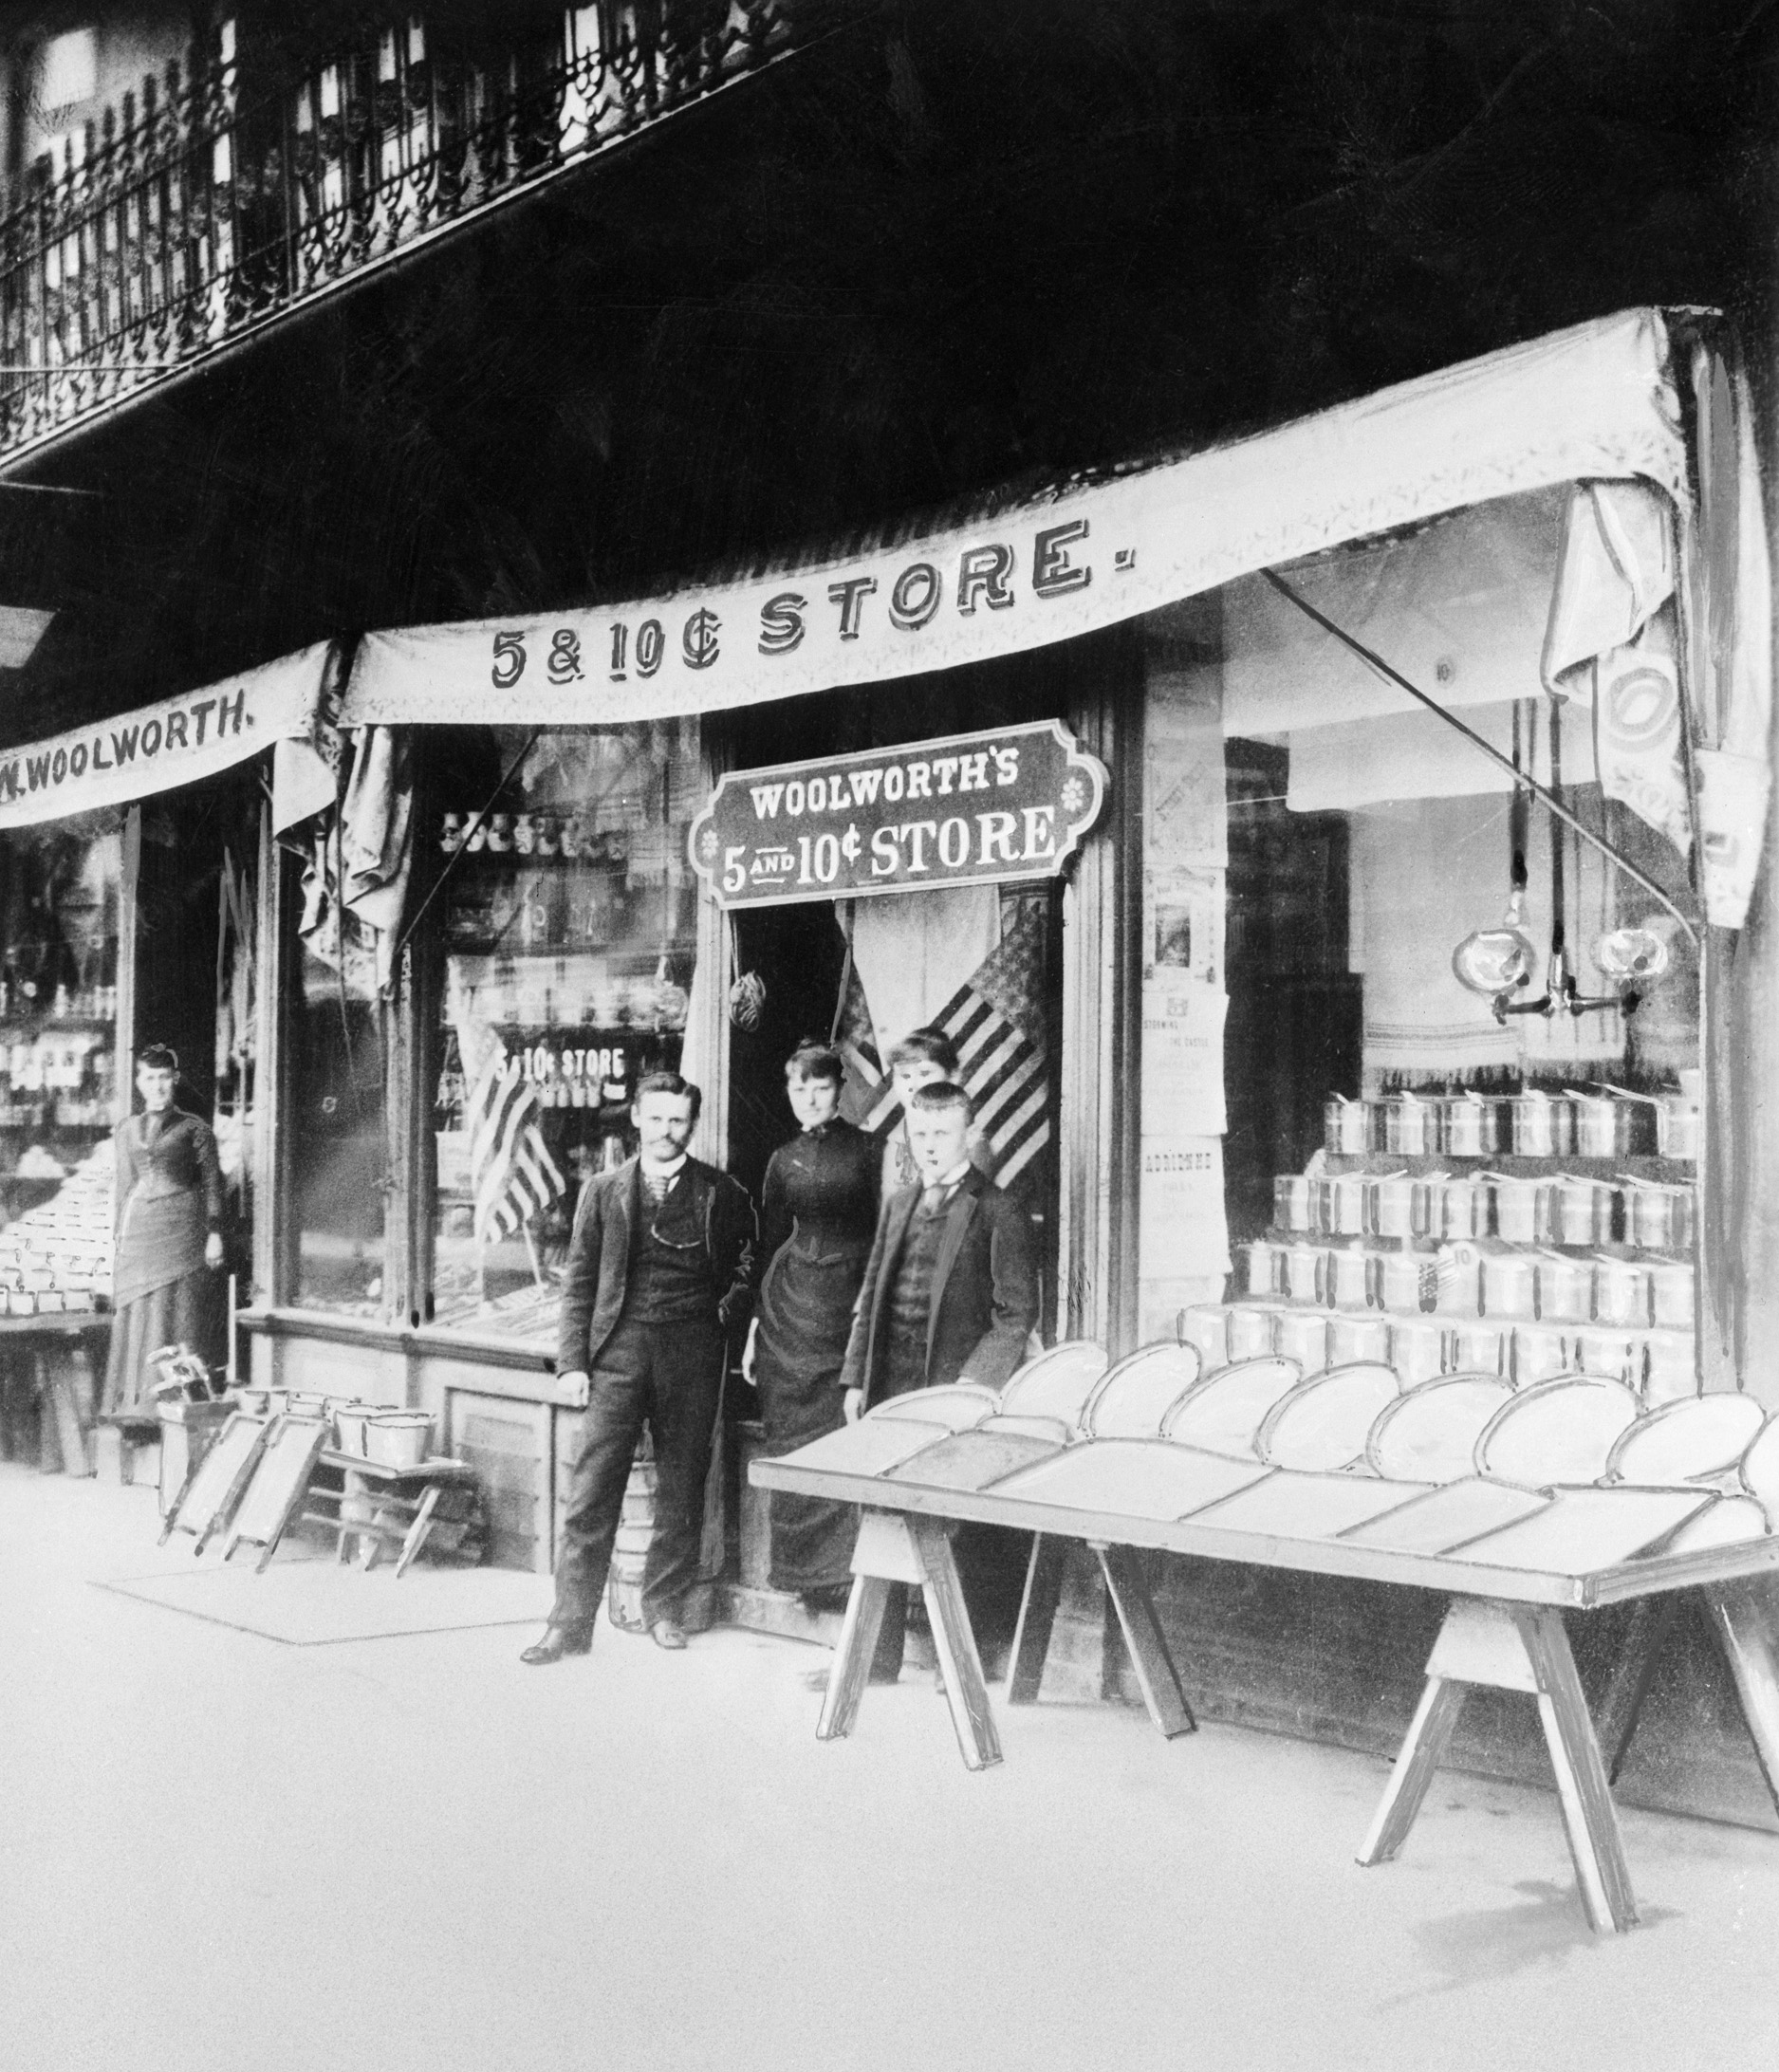 Image Five and dime stores history